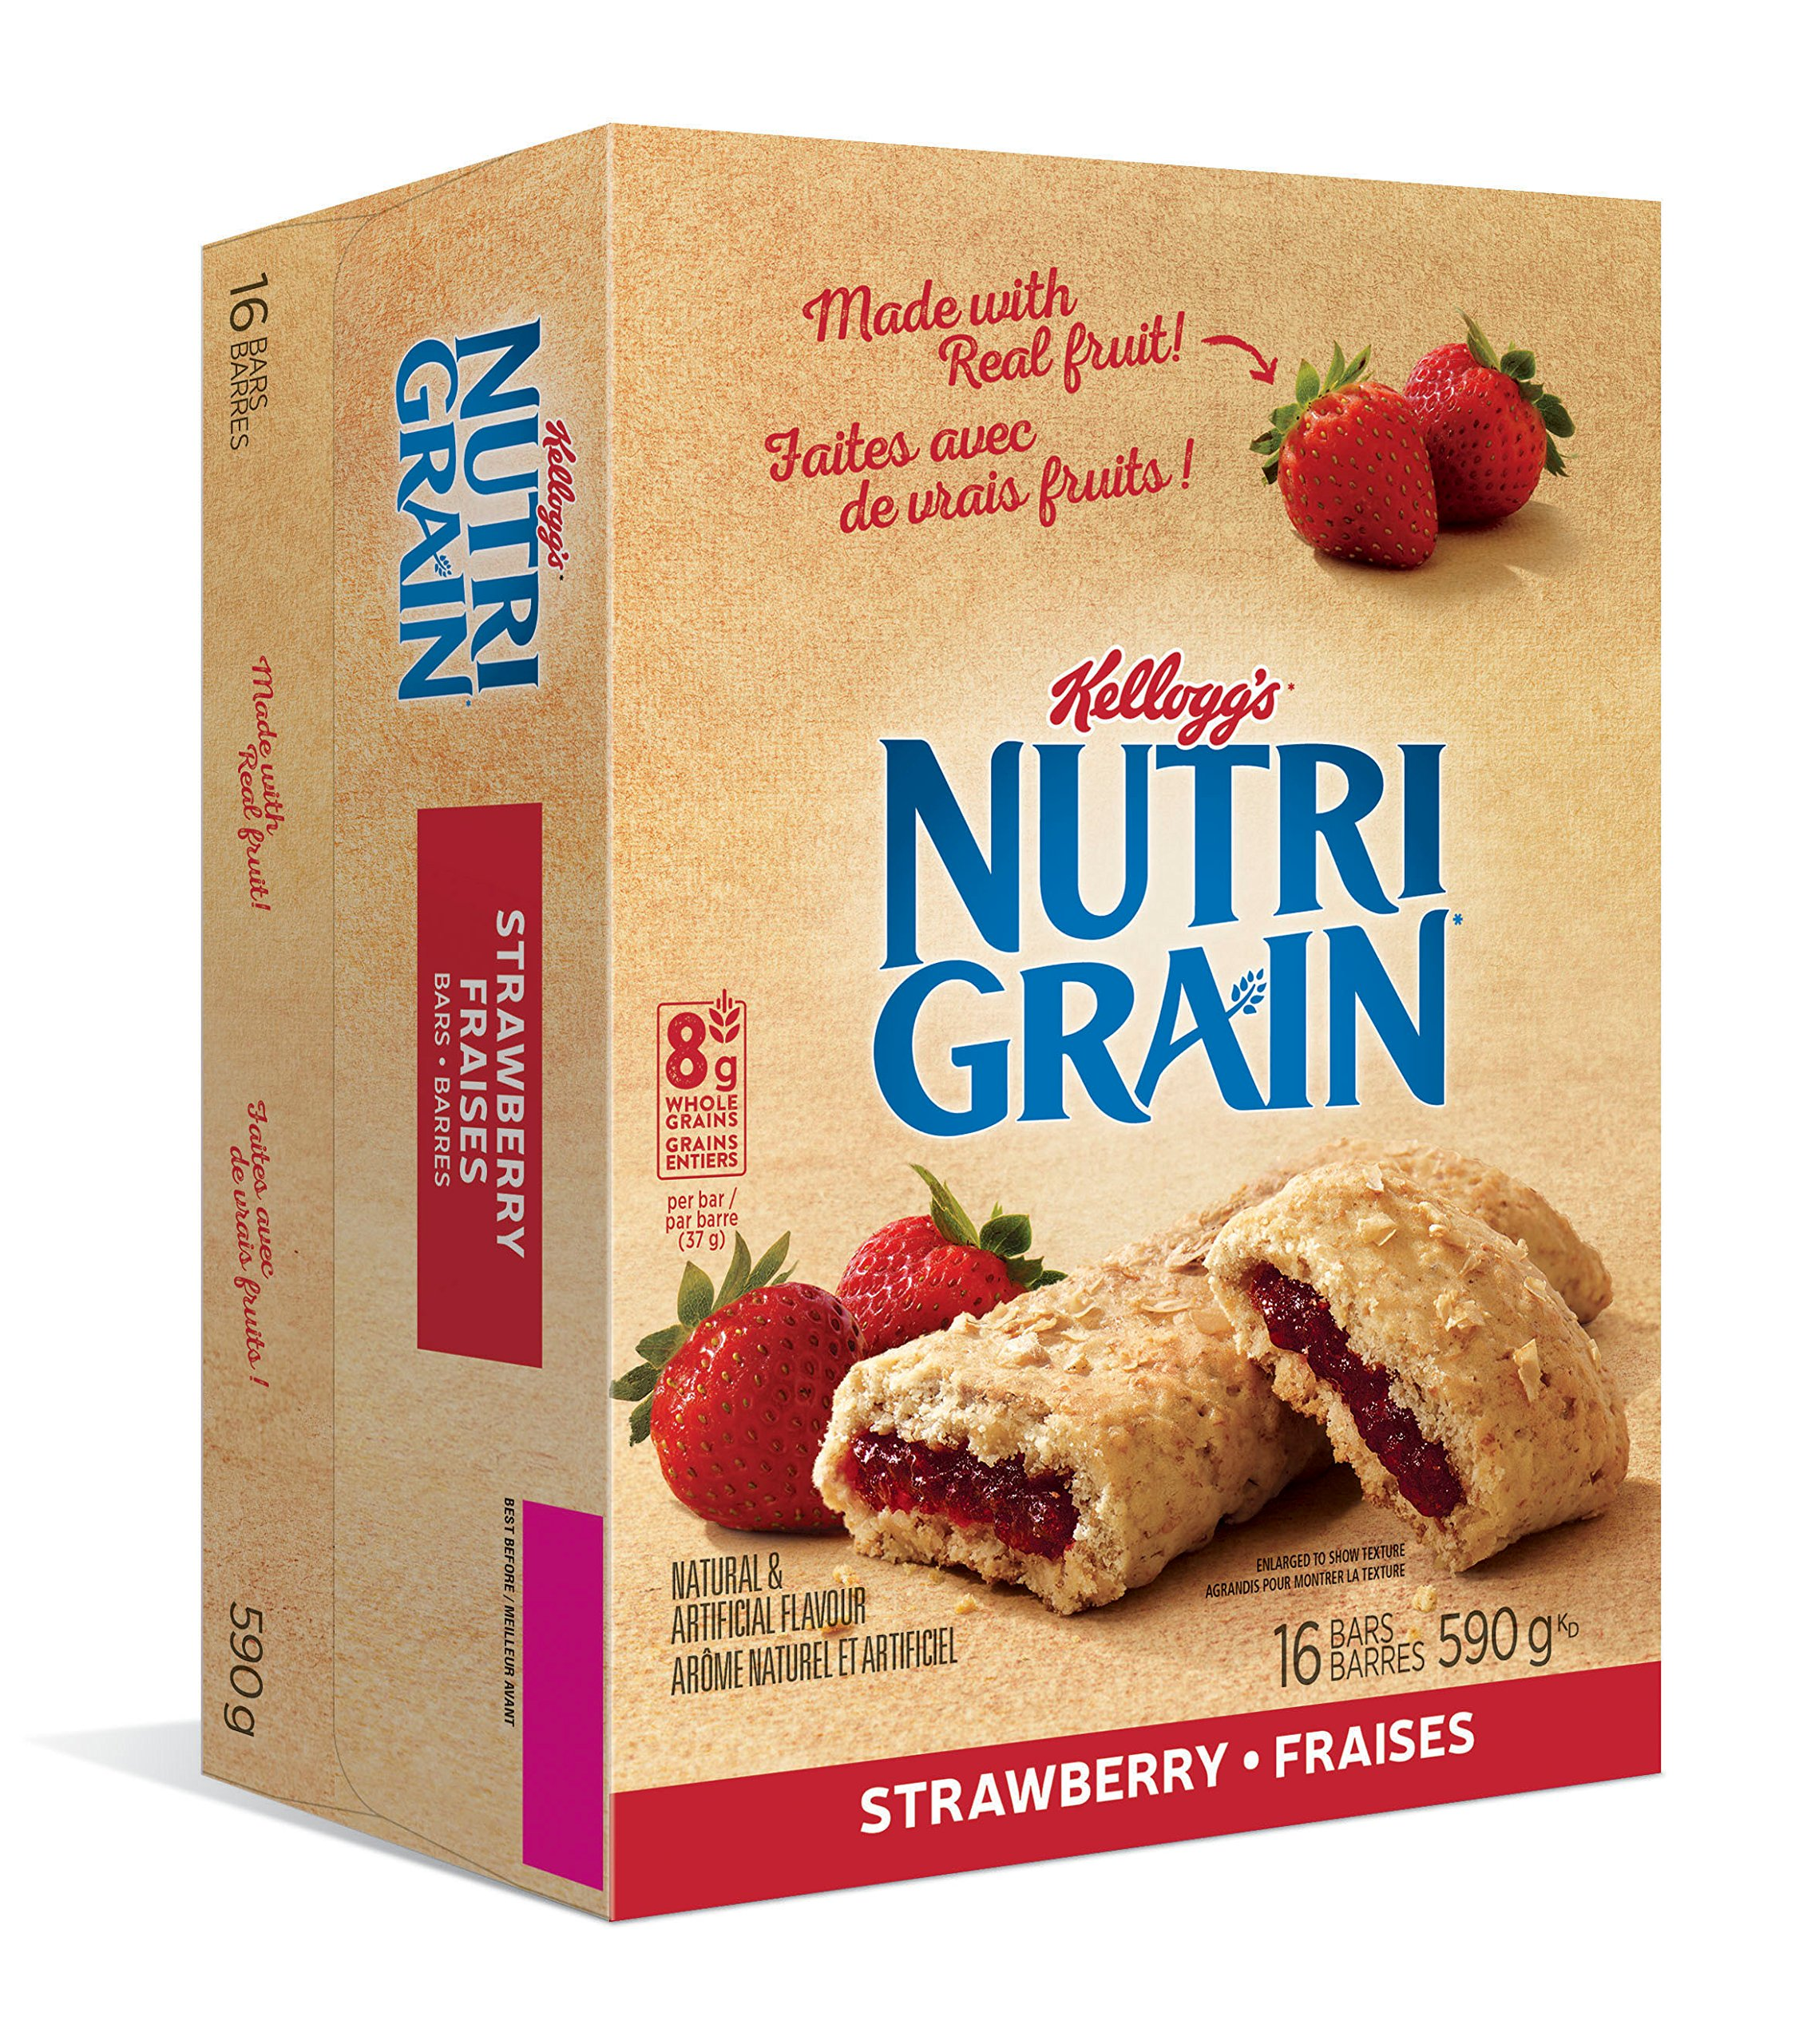 Kellogg's Nutri-Grain Strawberry Flavour 16 bars, 590g/20.81 Ounce box {Imported from Canada} by Kellogg's